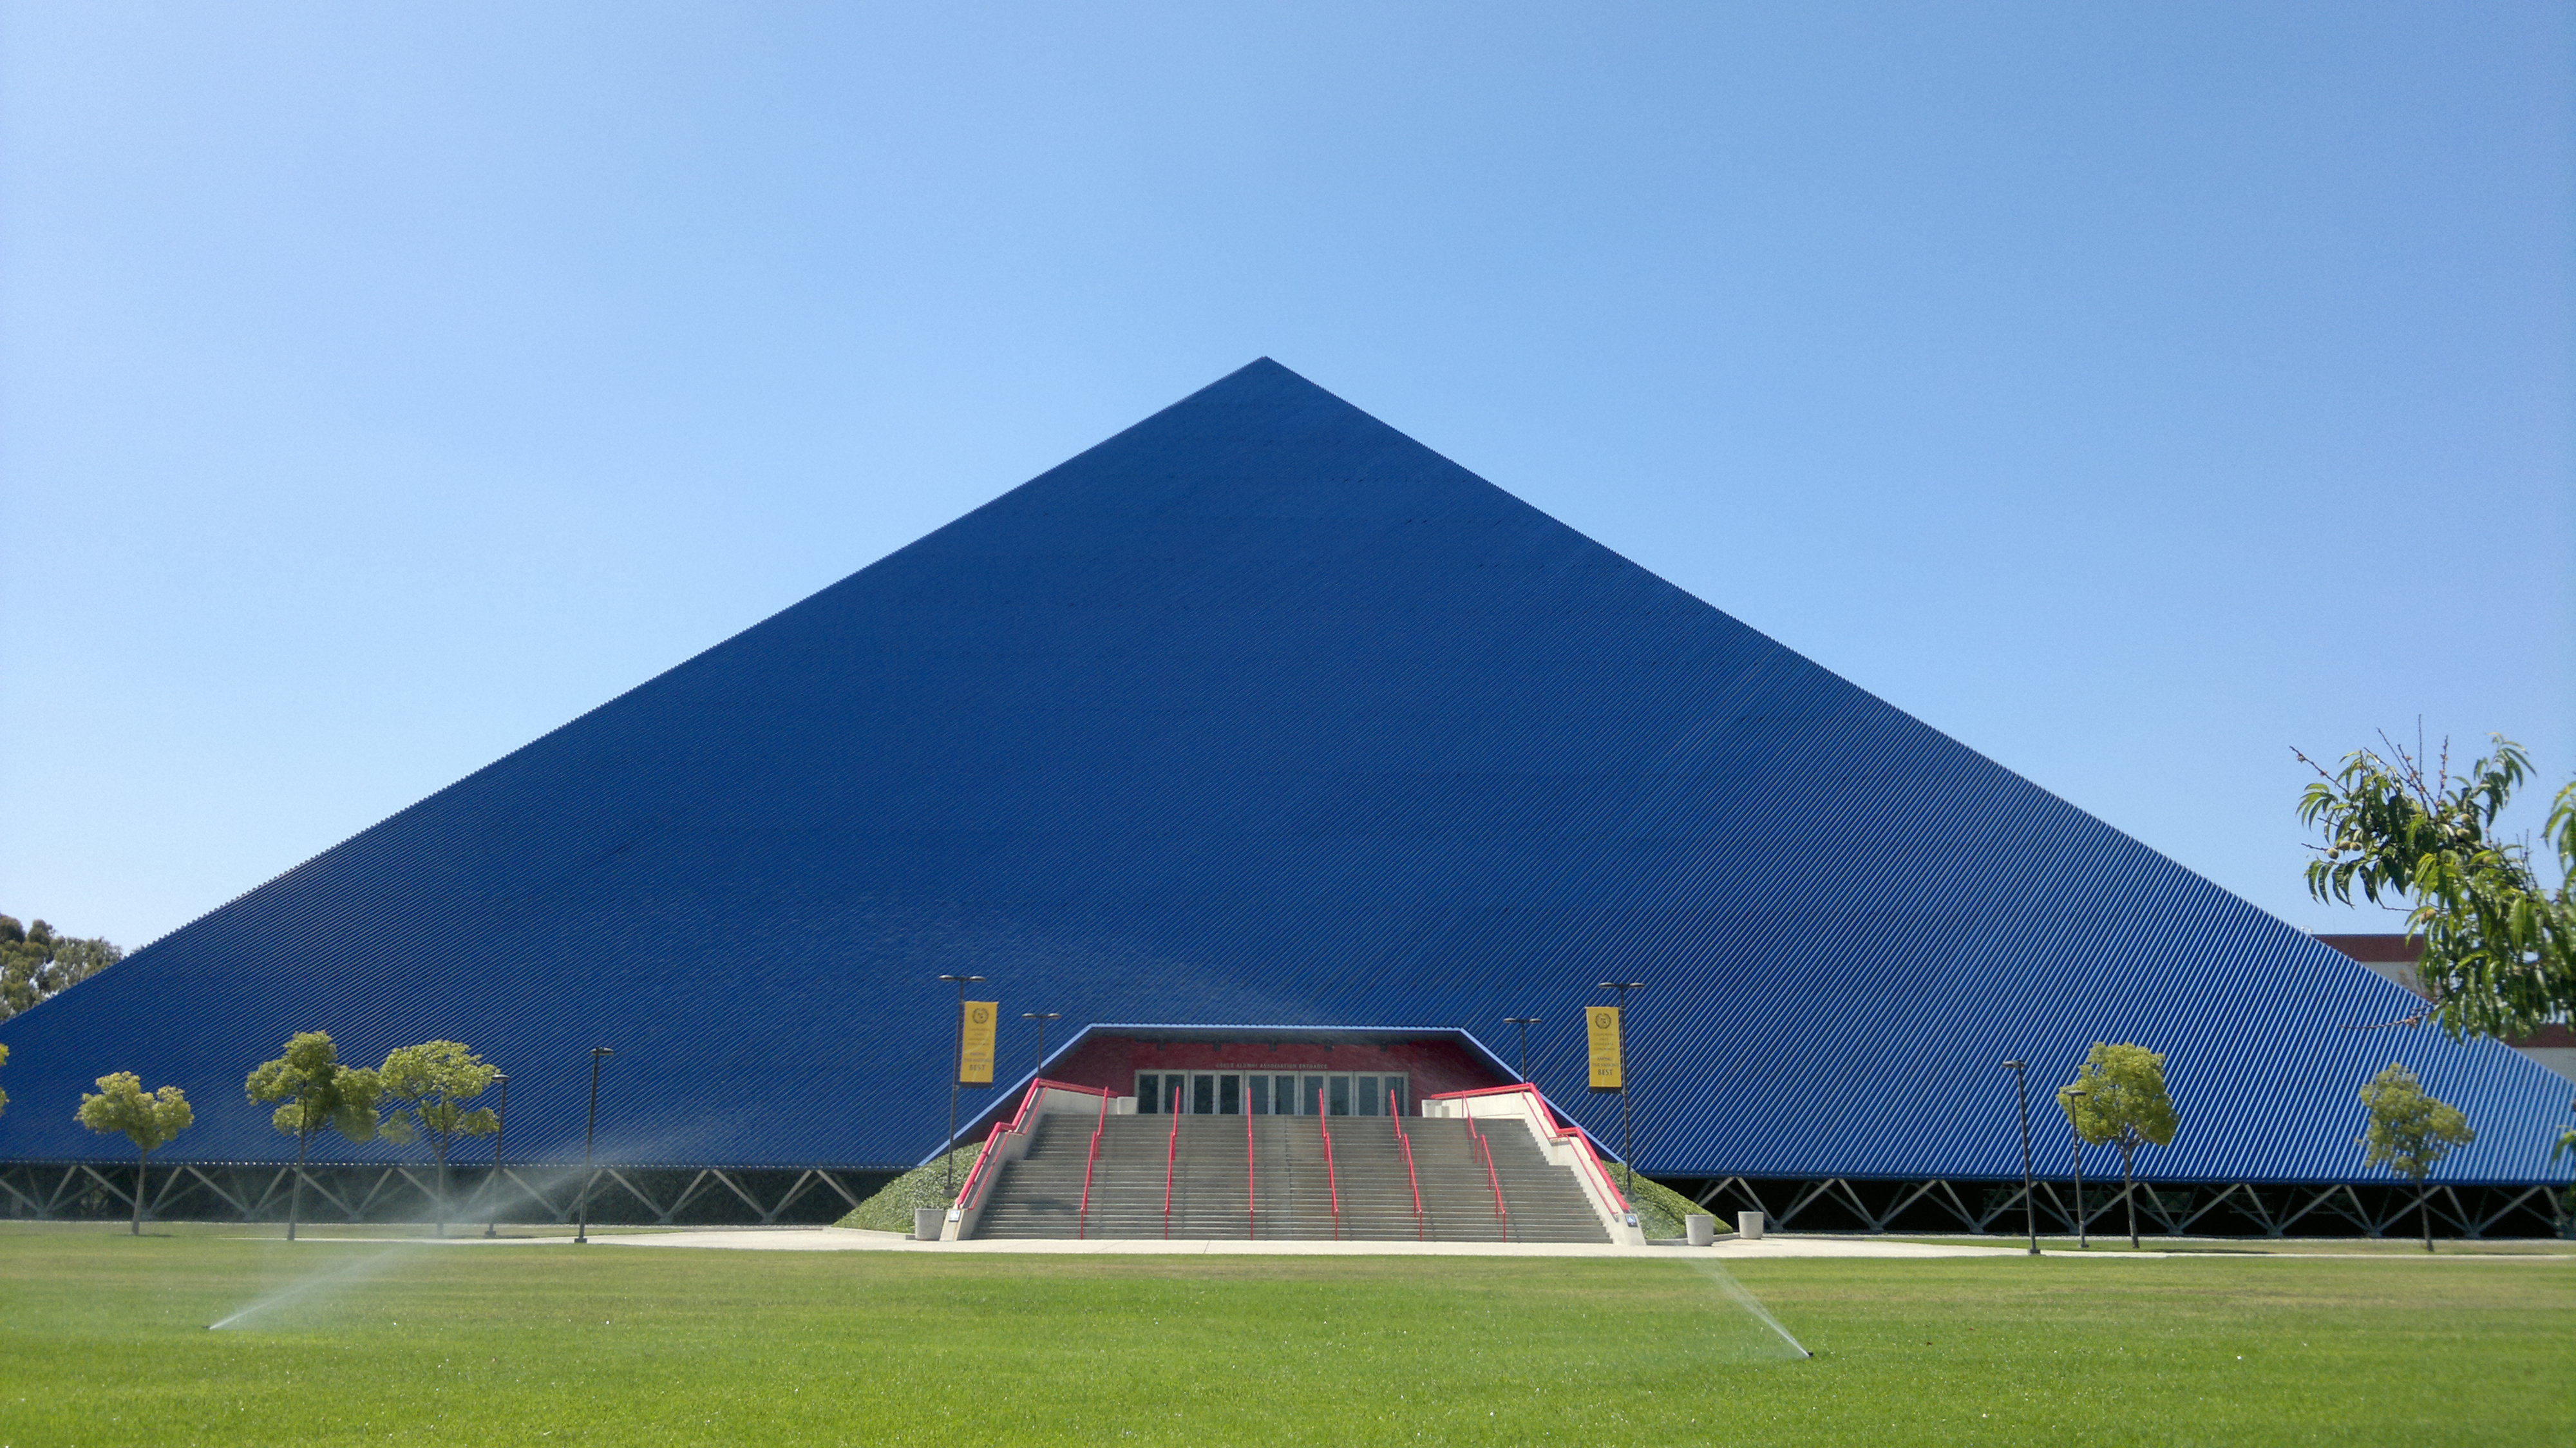 Image of the Pyramid